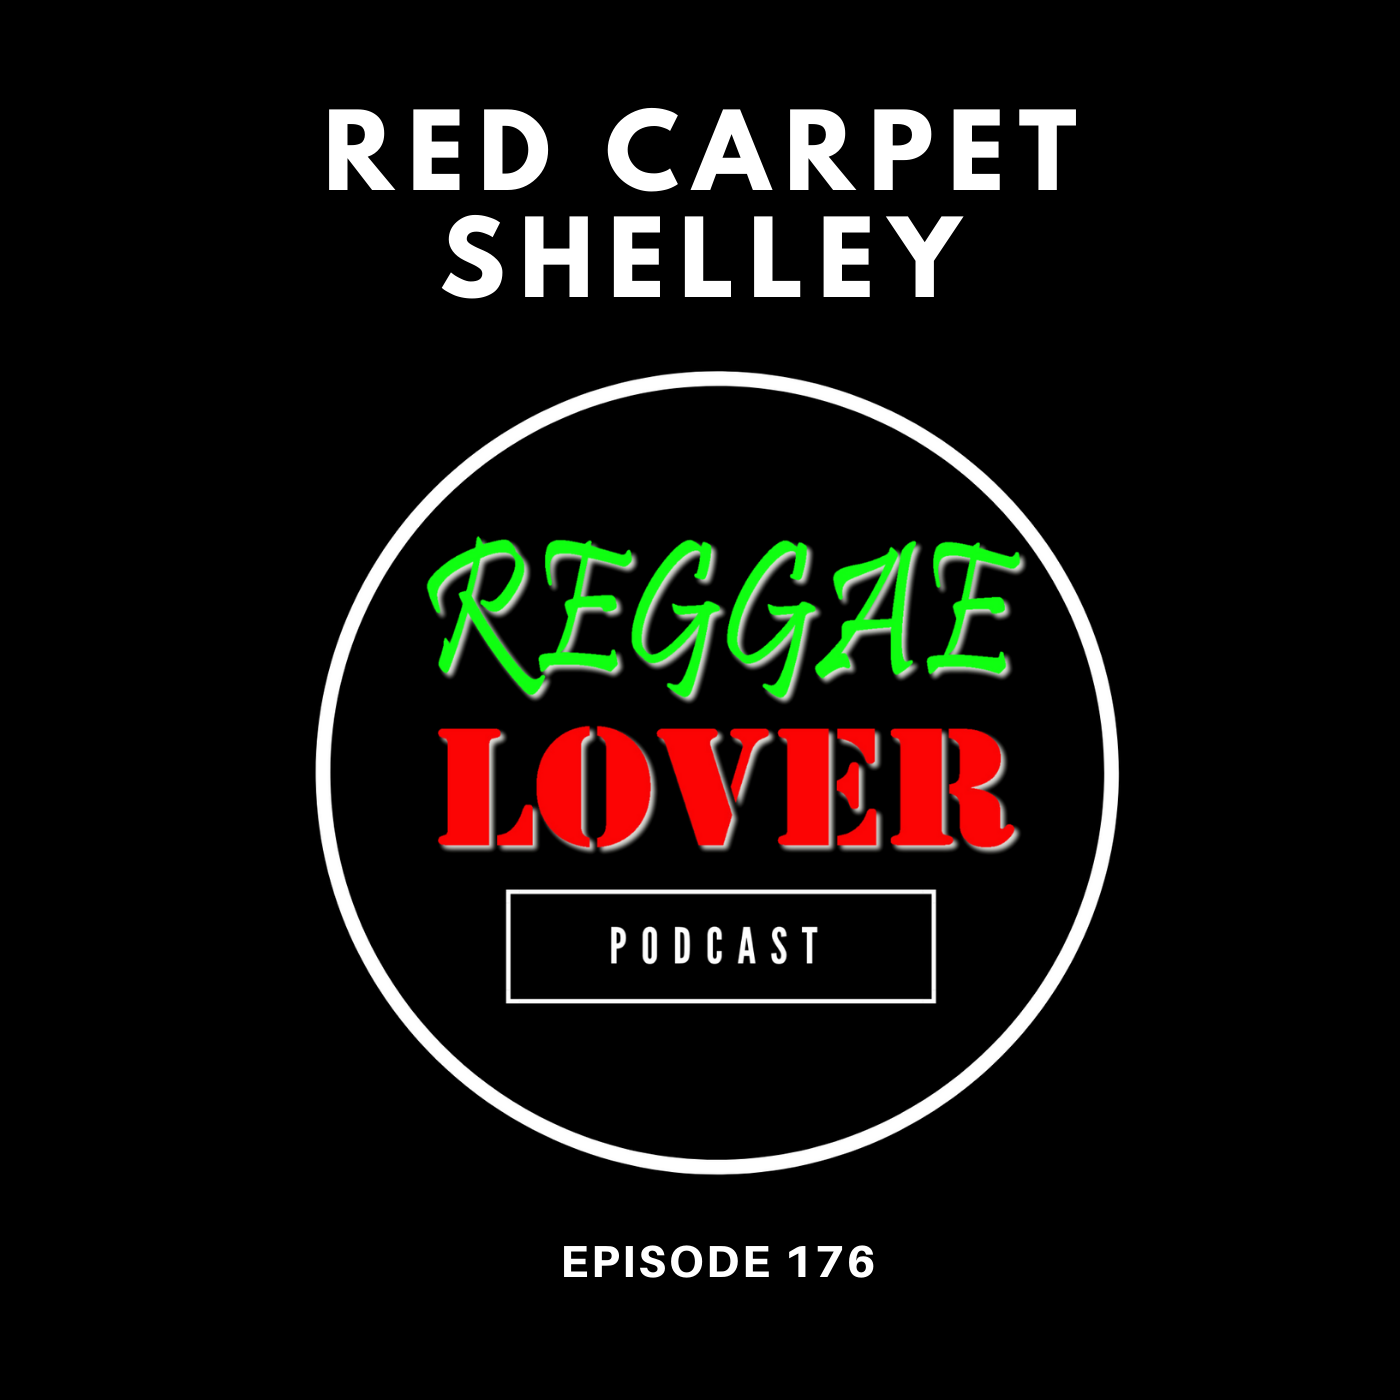 Episode 176 ( Season 5, Ep. 4) 'The Red Carpet' with guest Red Carpet Shelley, Caribbean blogger, radio and media personality